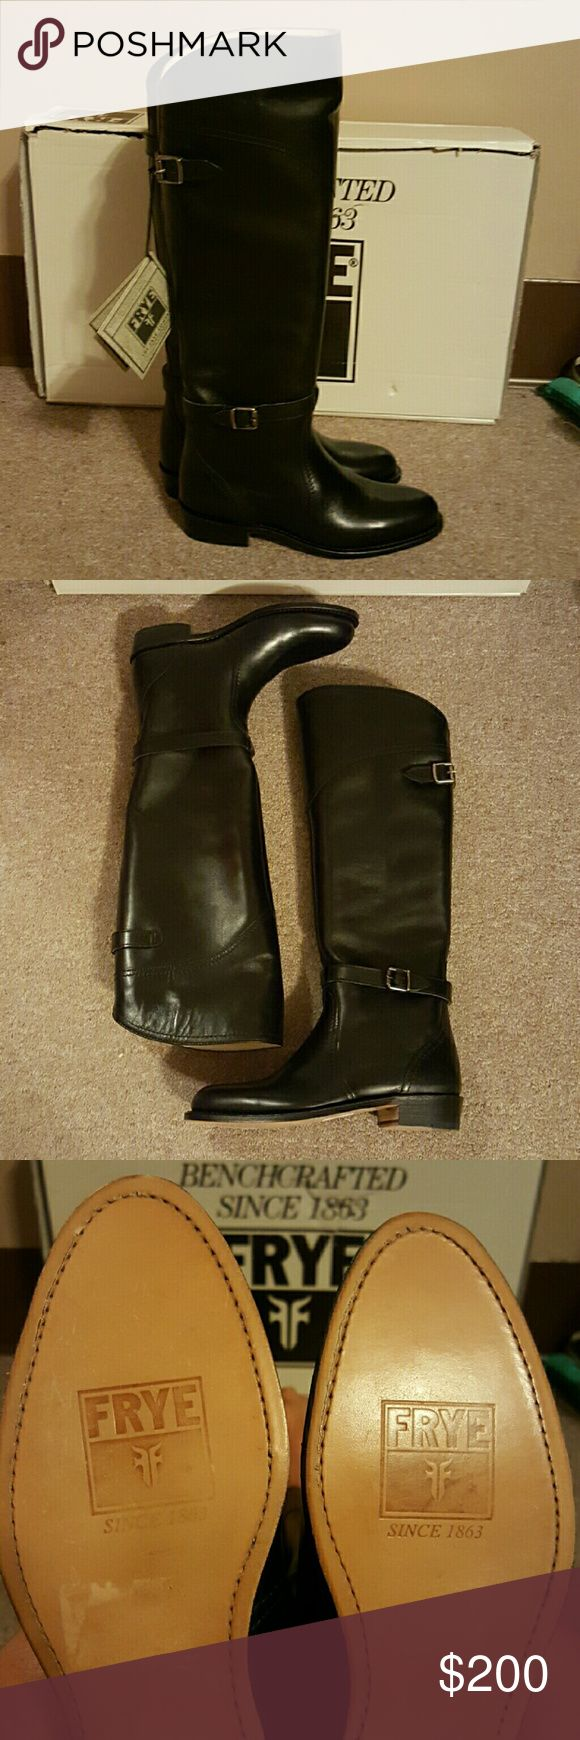 Brand New Frye Riding boots NWT Frye riding boots. Leather. Never worn. One size too small. Frye Shoes Winter & Rain Boots